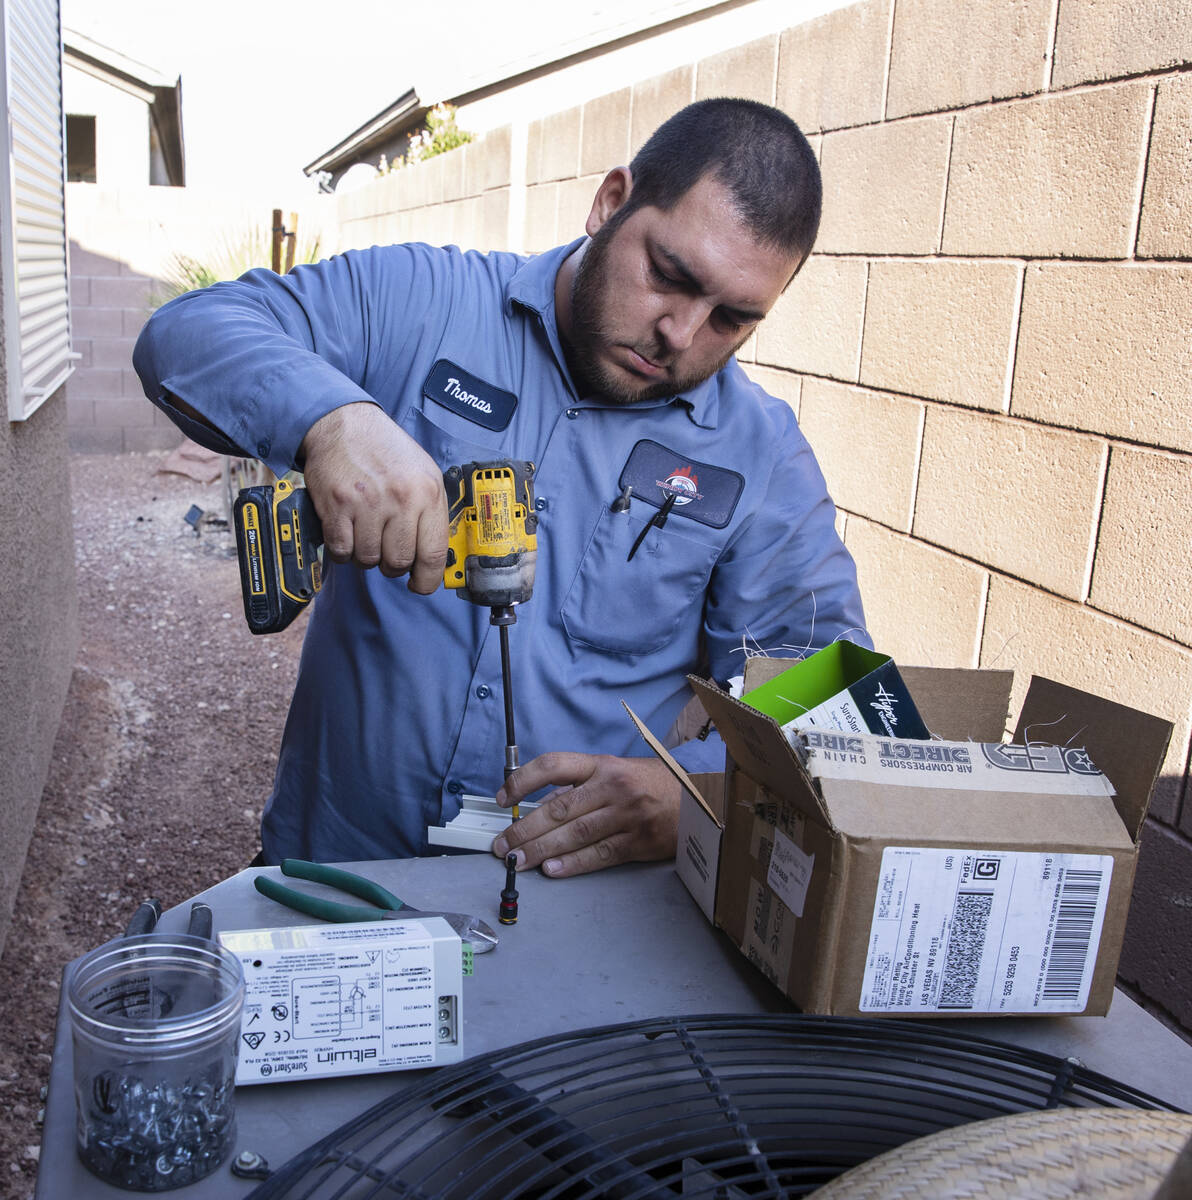 Windy City Air's technician Thomas Padron repairs an air conditioner at Vulcan St on Friday, Se ...